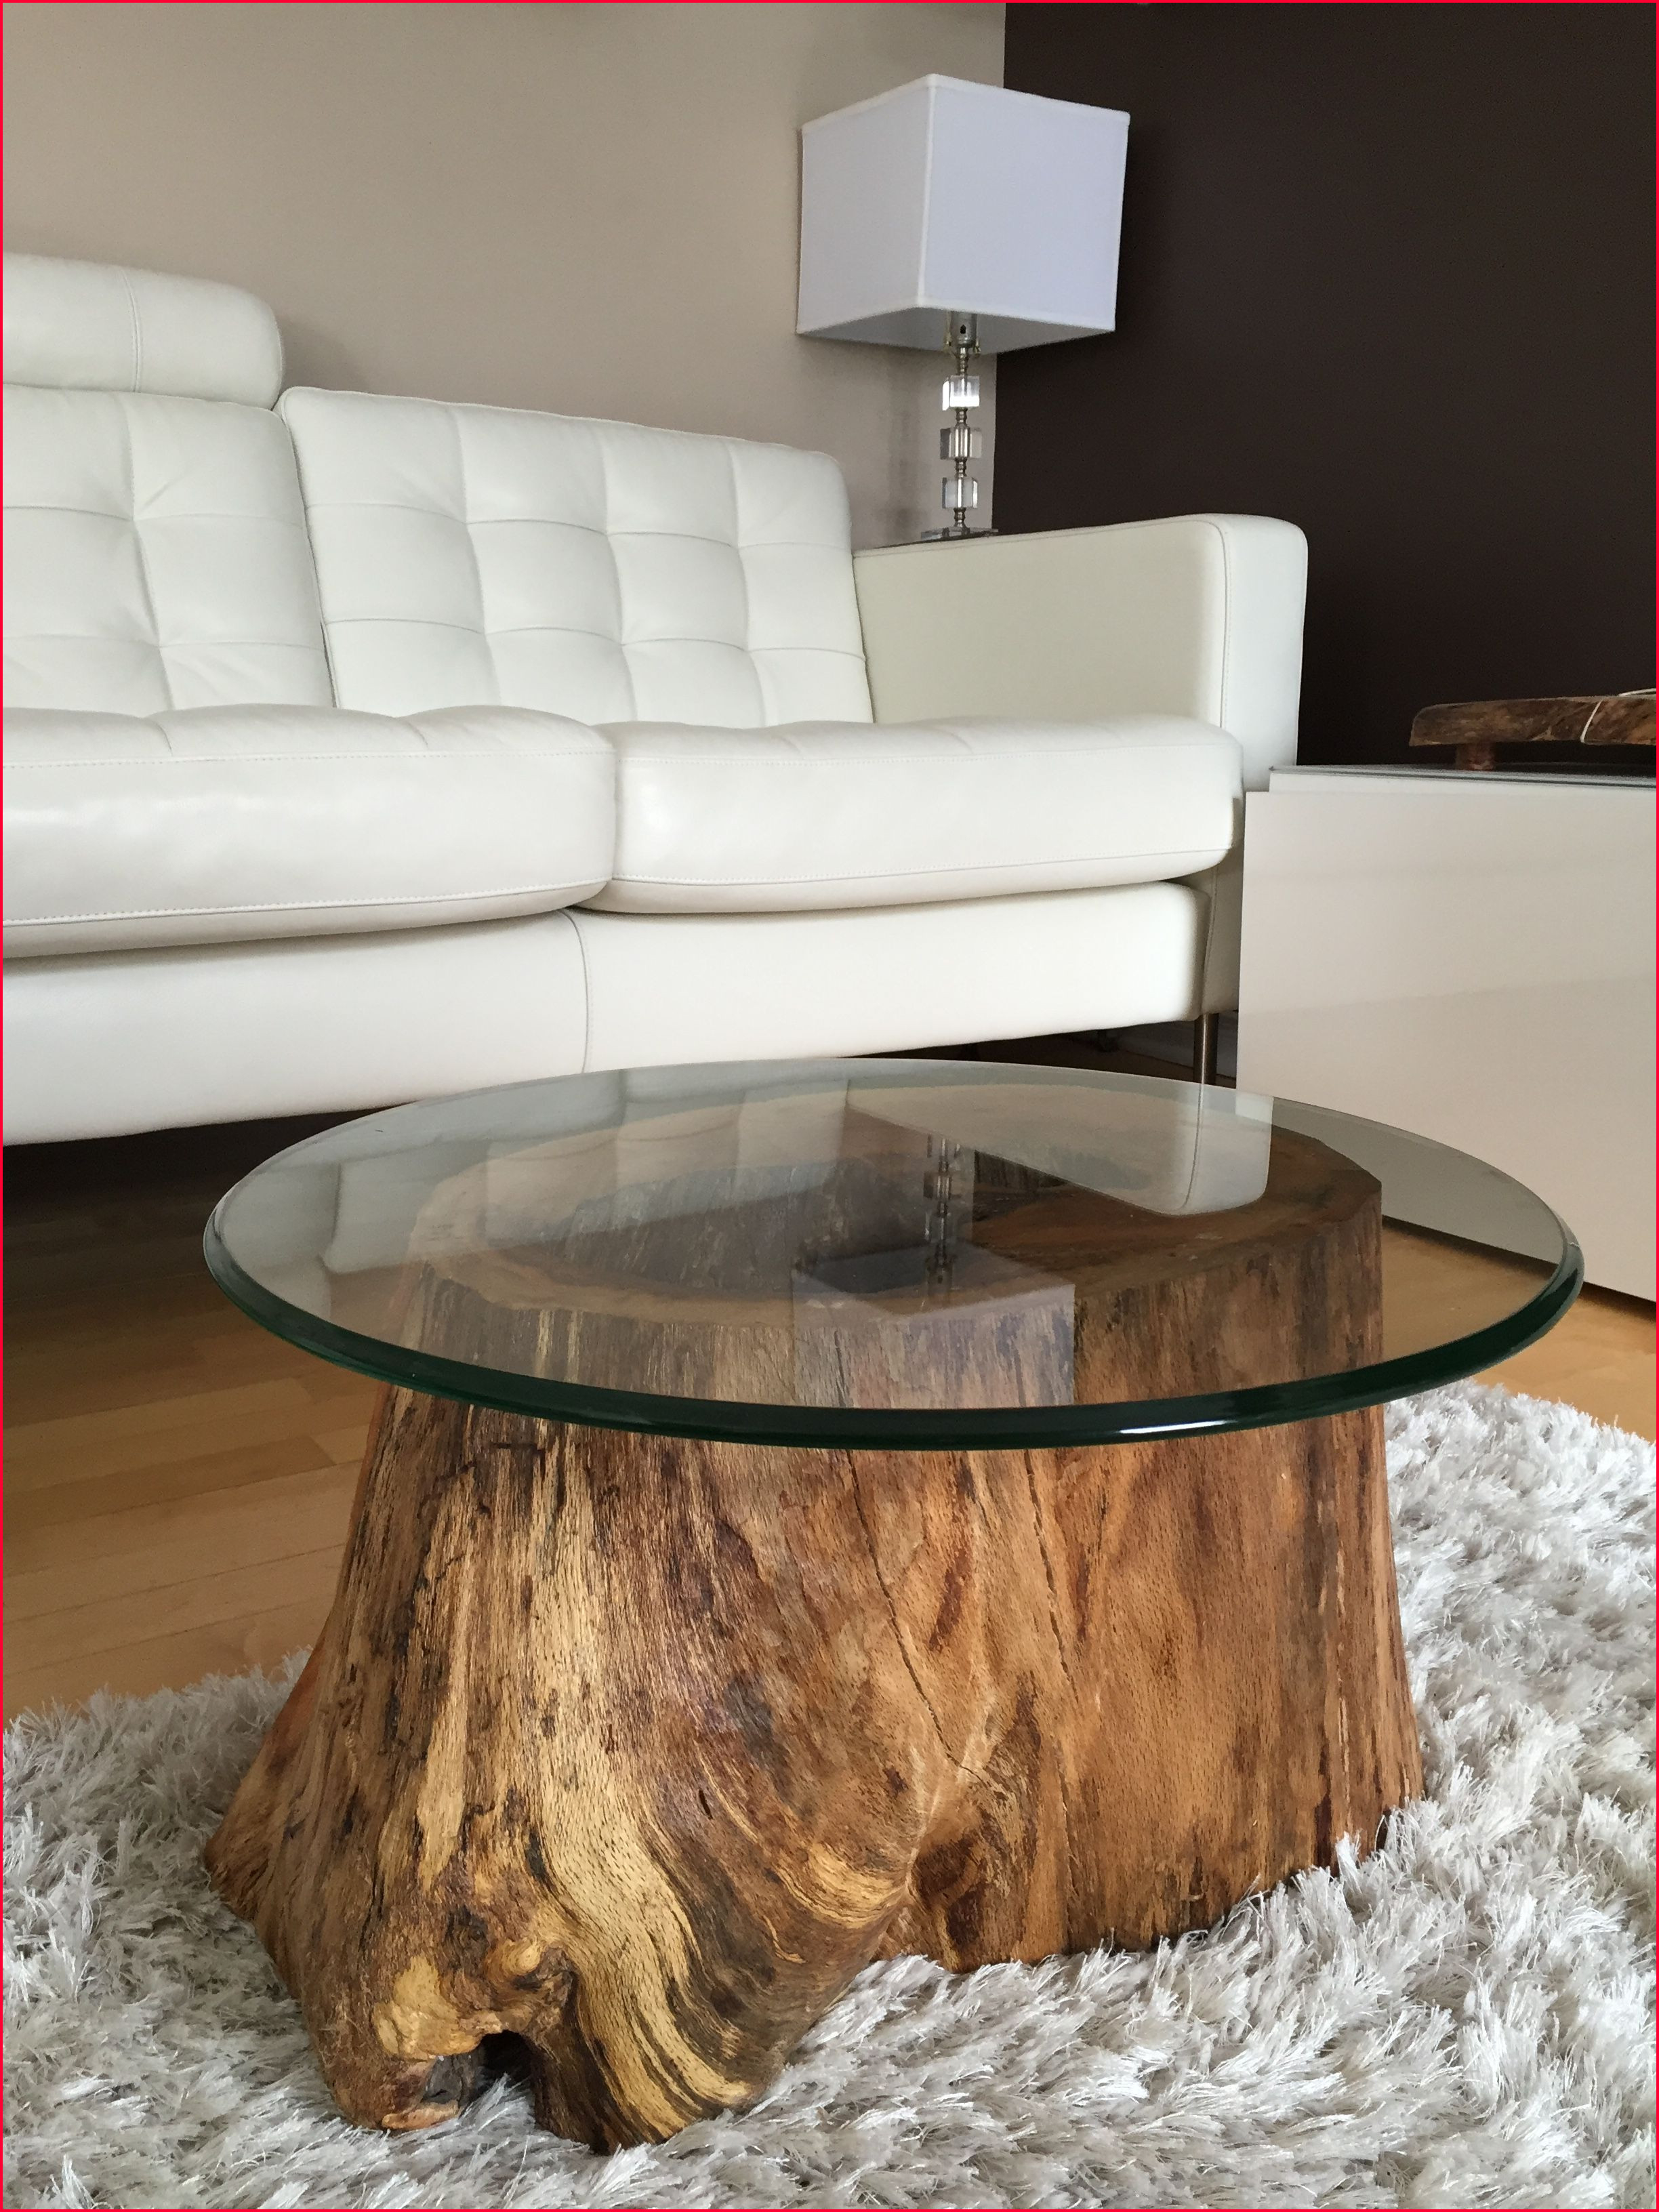 Mesas De Troncos De Madera Q0d4 Mesa Tronco Madera Coffee Tables 23 Furniture Modern